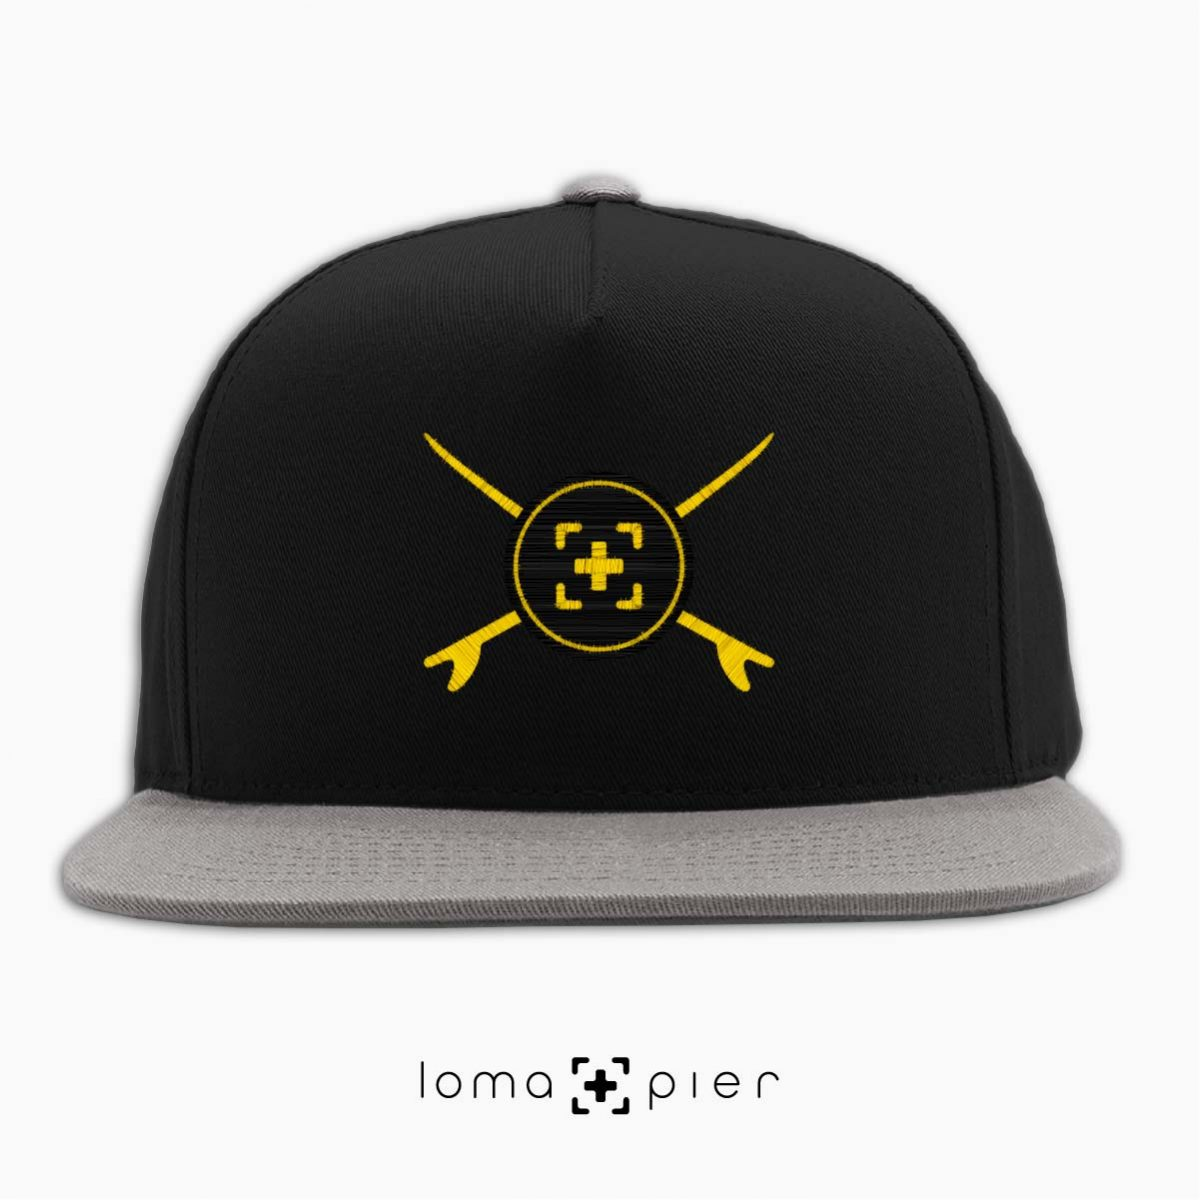 SURFERS BADGE hermosa beach snapback hat in black/grey by lomapier hat store